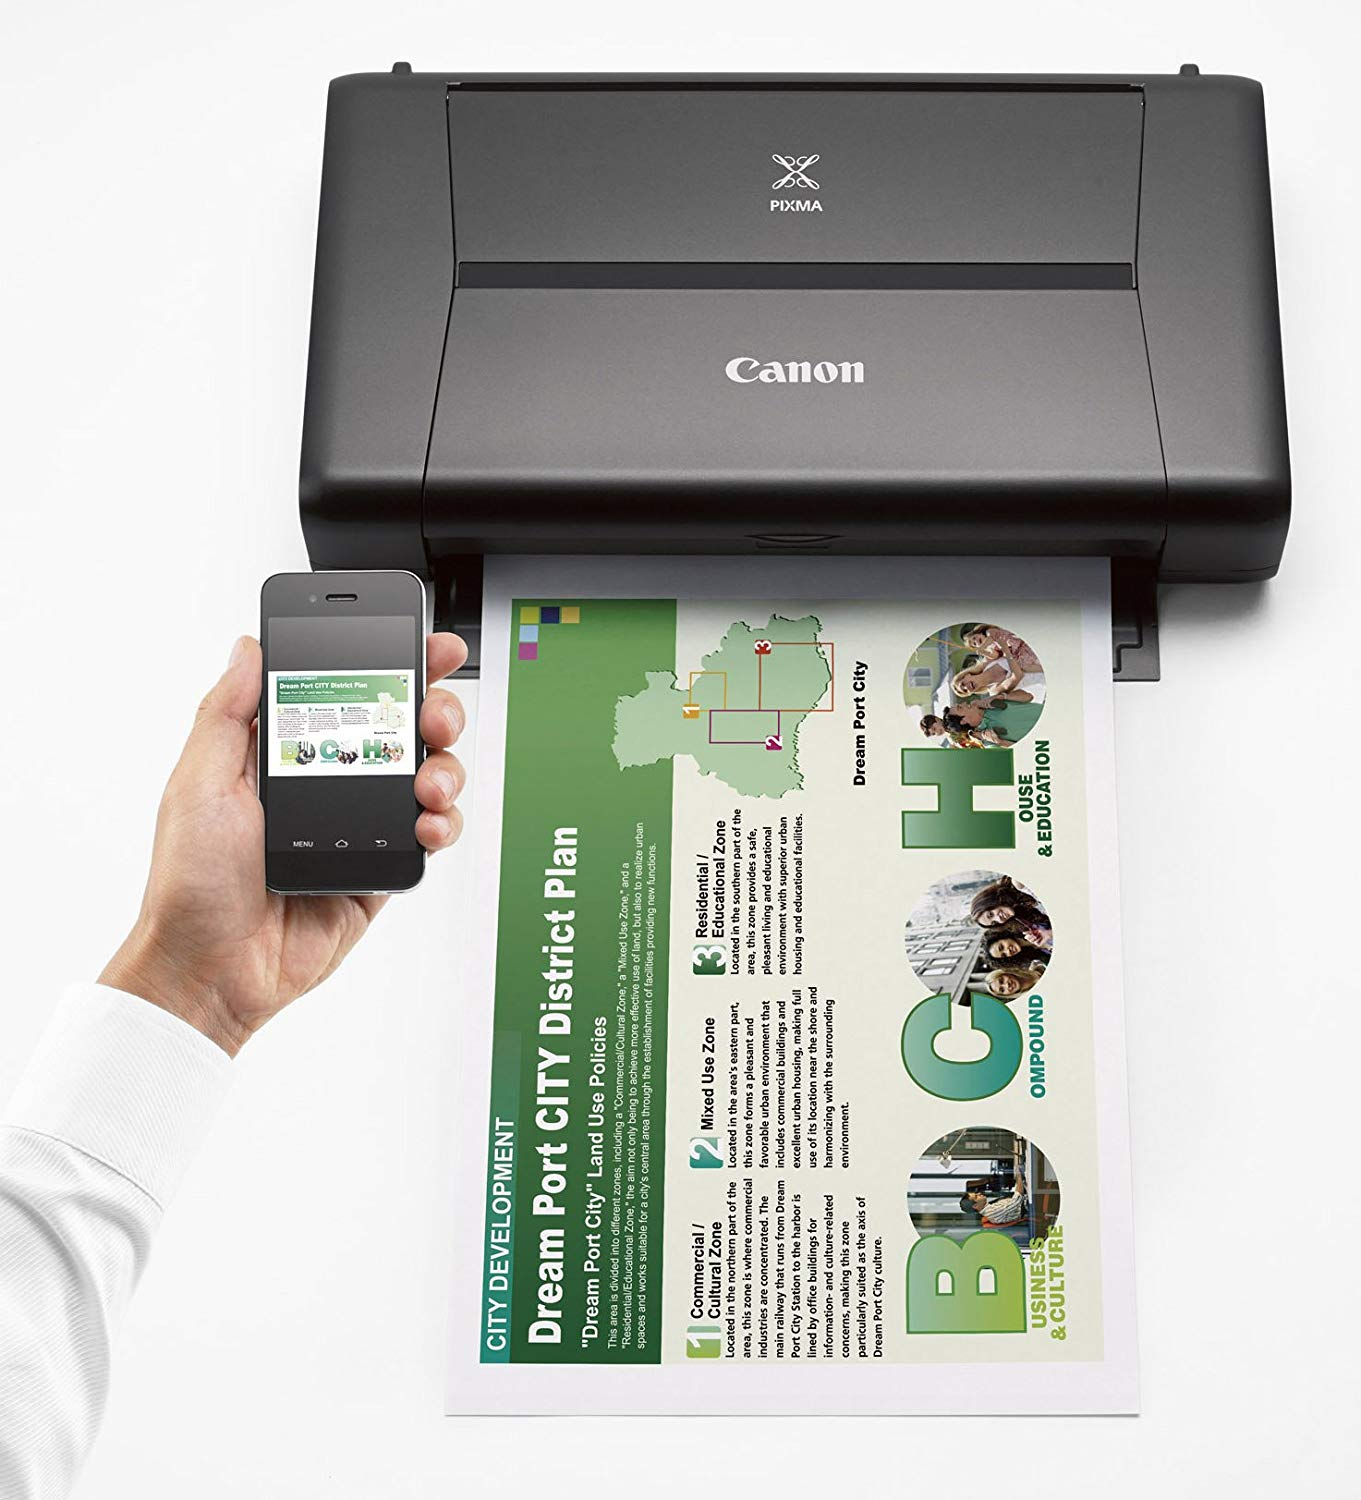 A wireless printer from Canon.